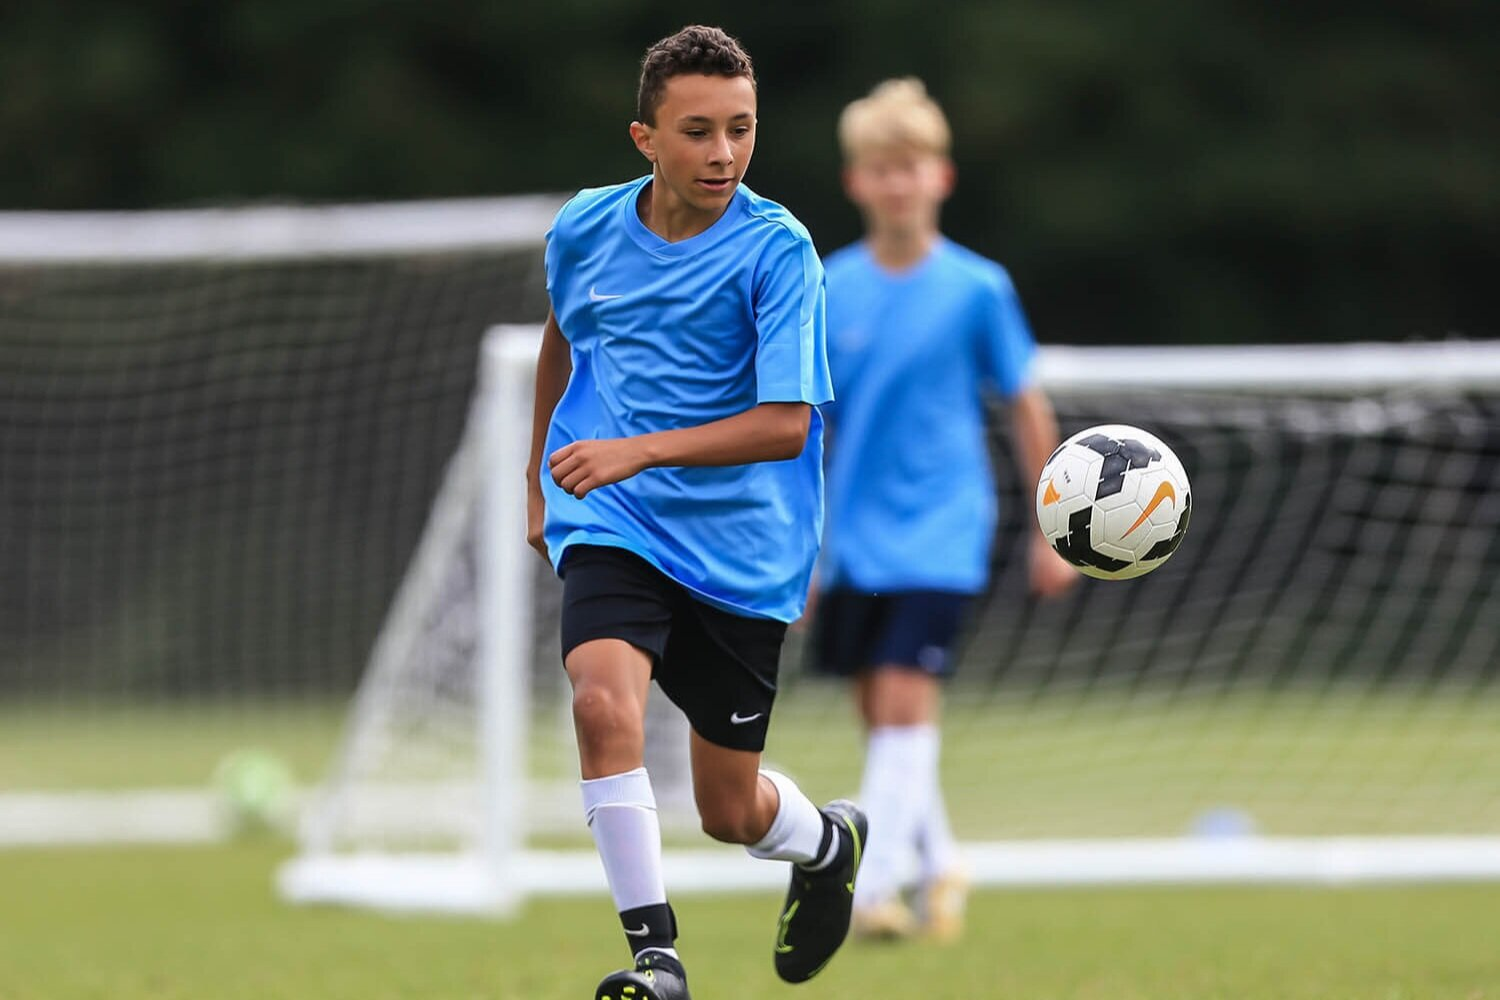 Invitación Cumbre Conectado  Nike Football Camps at Lancing College — Euro Sports Camps